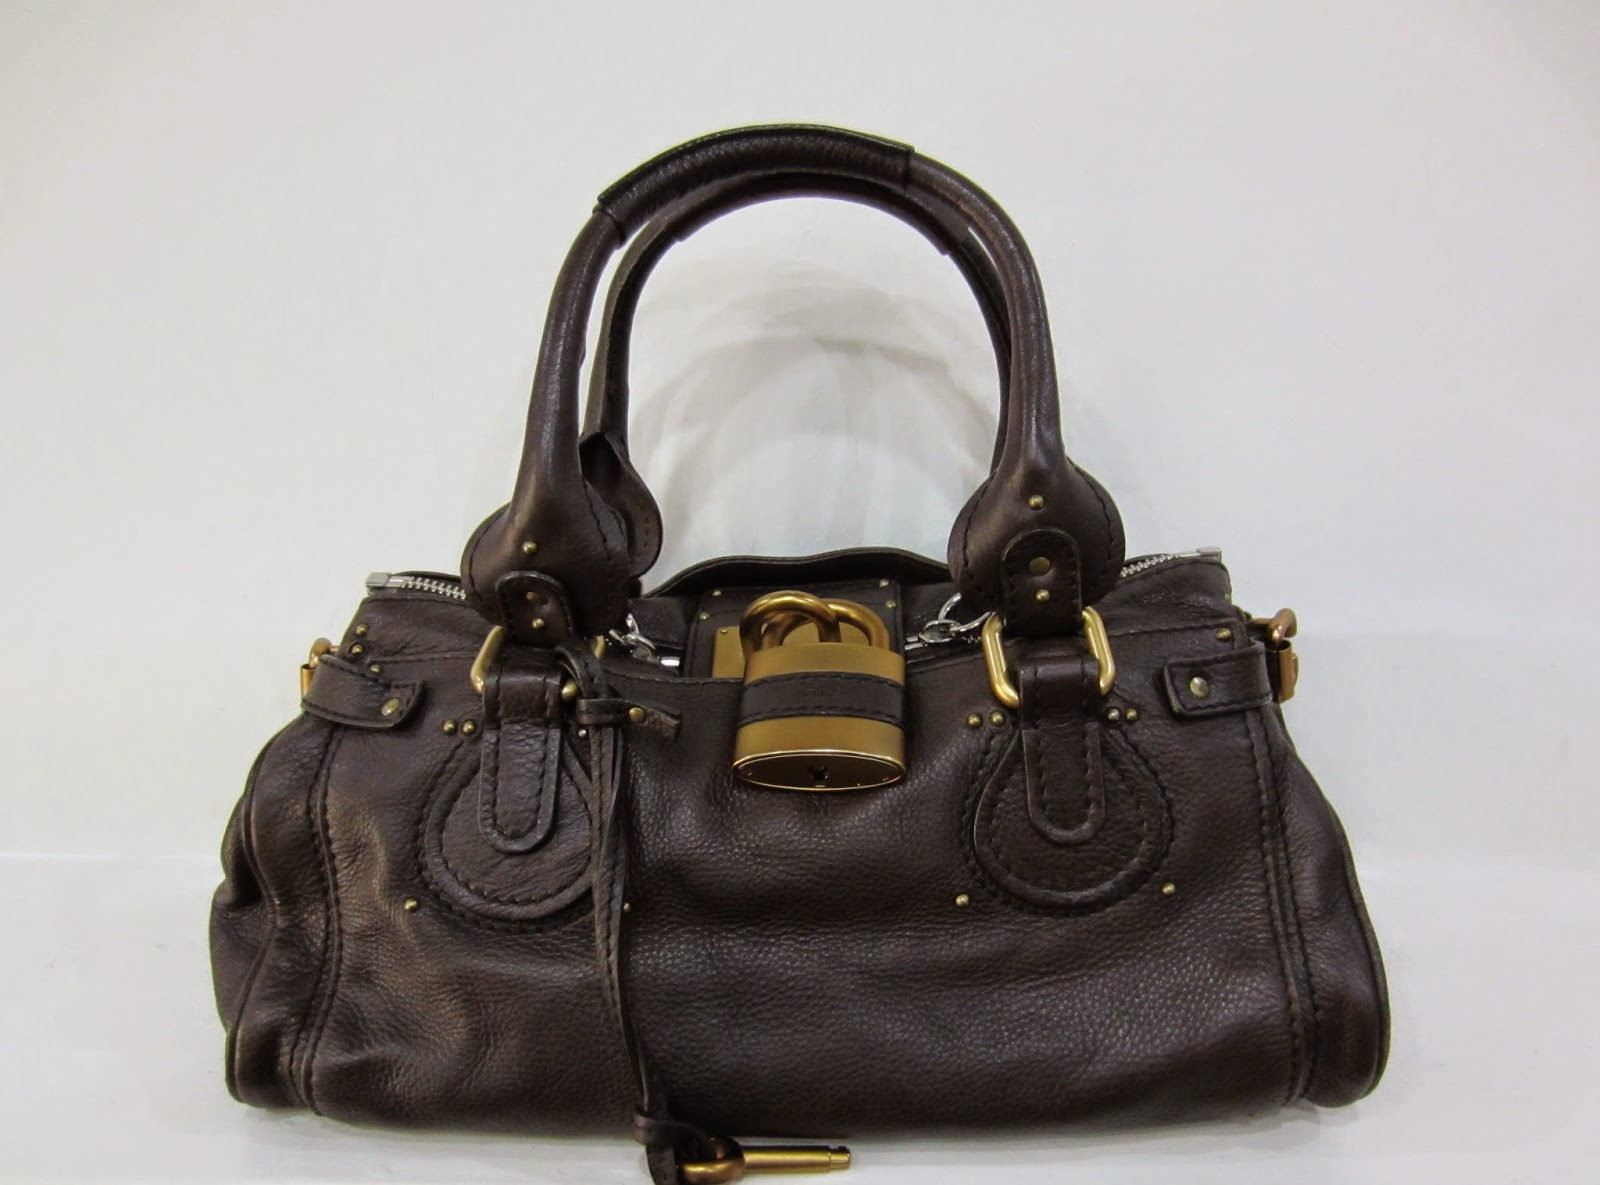 Chloe Brown Leather Paddington Bag